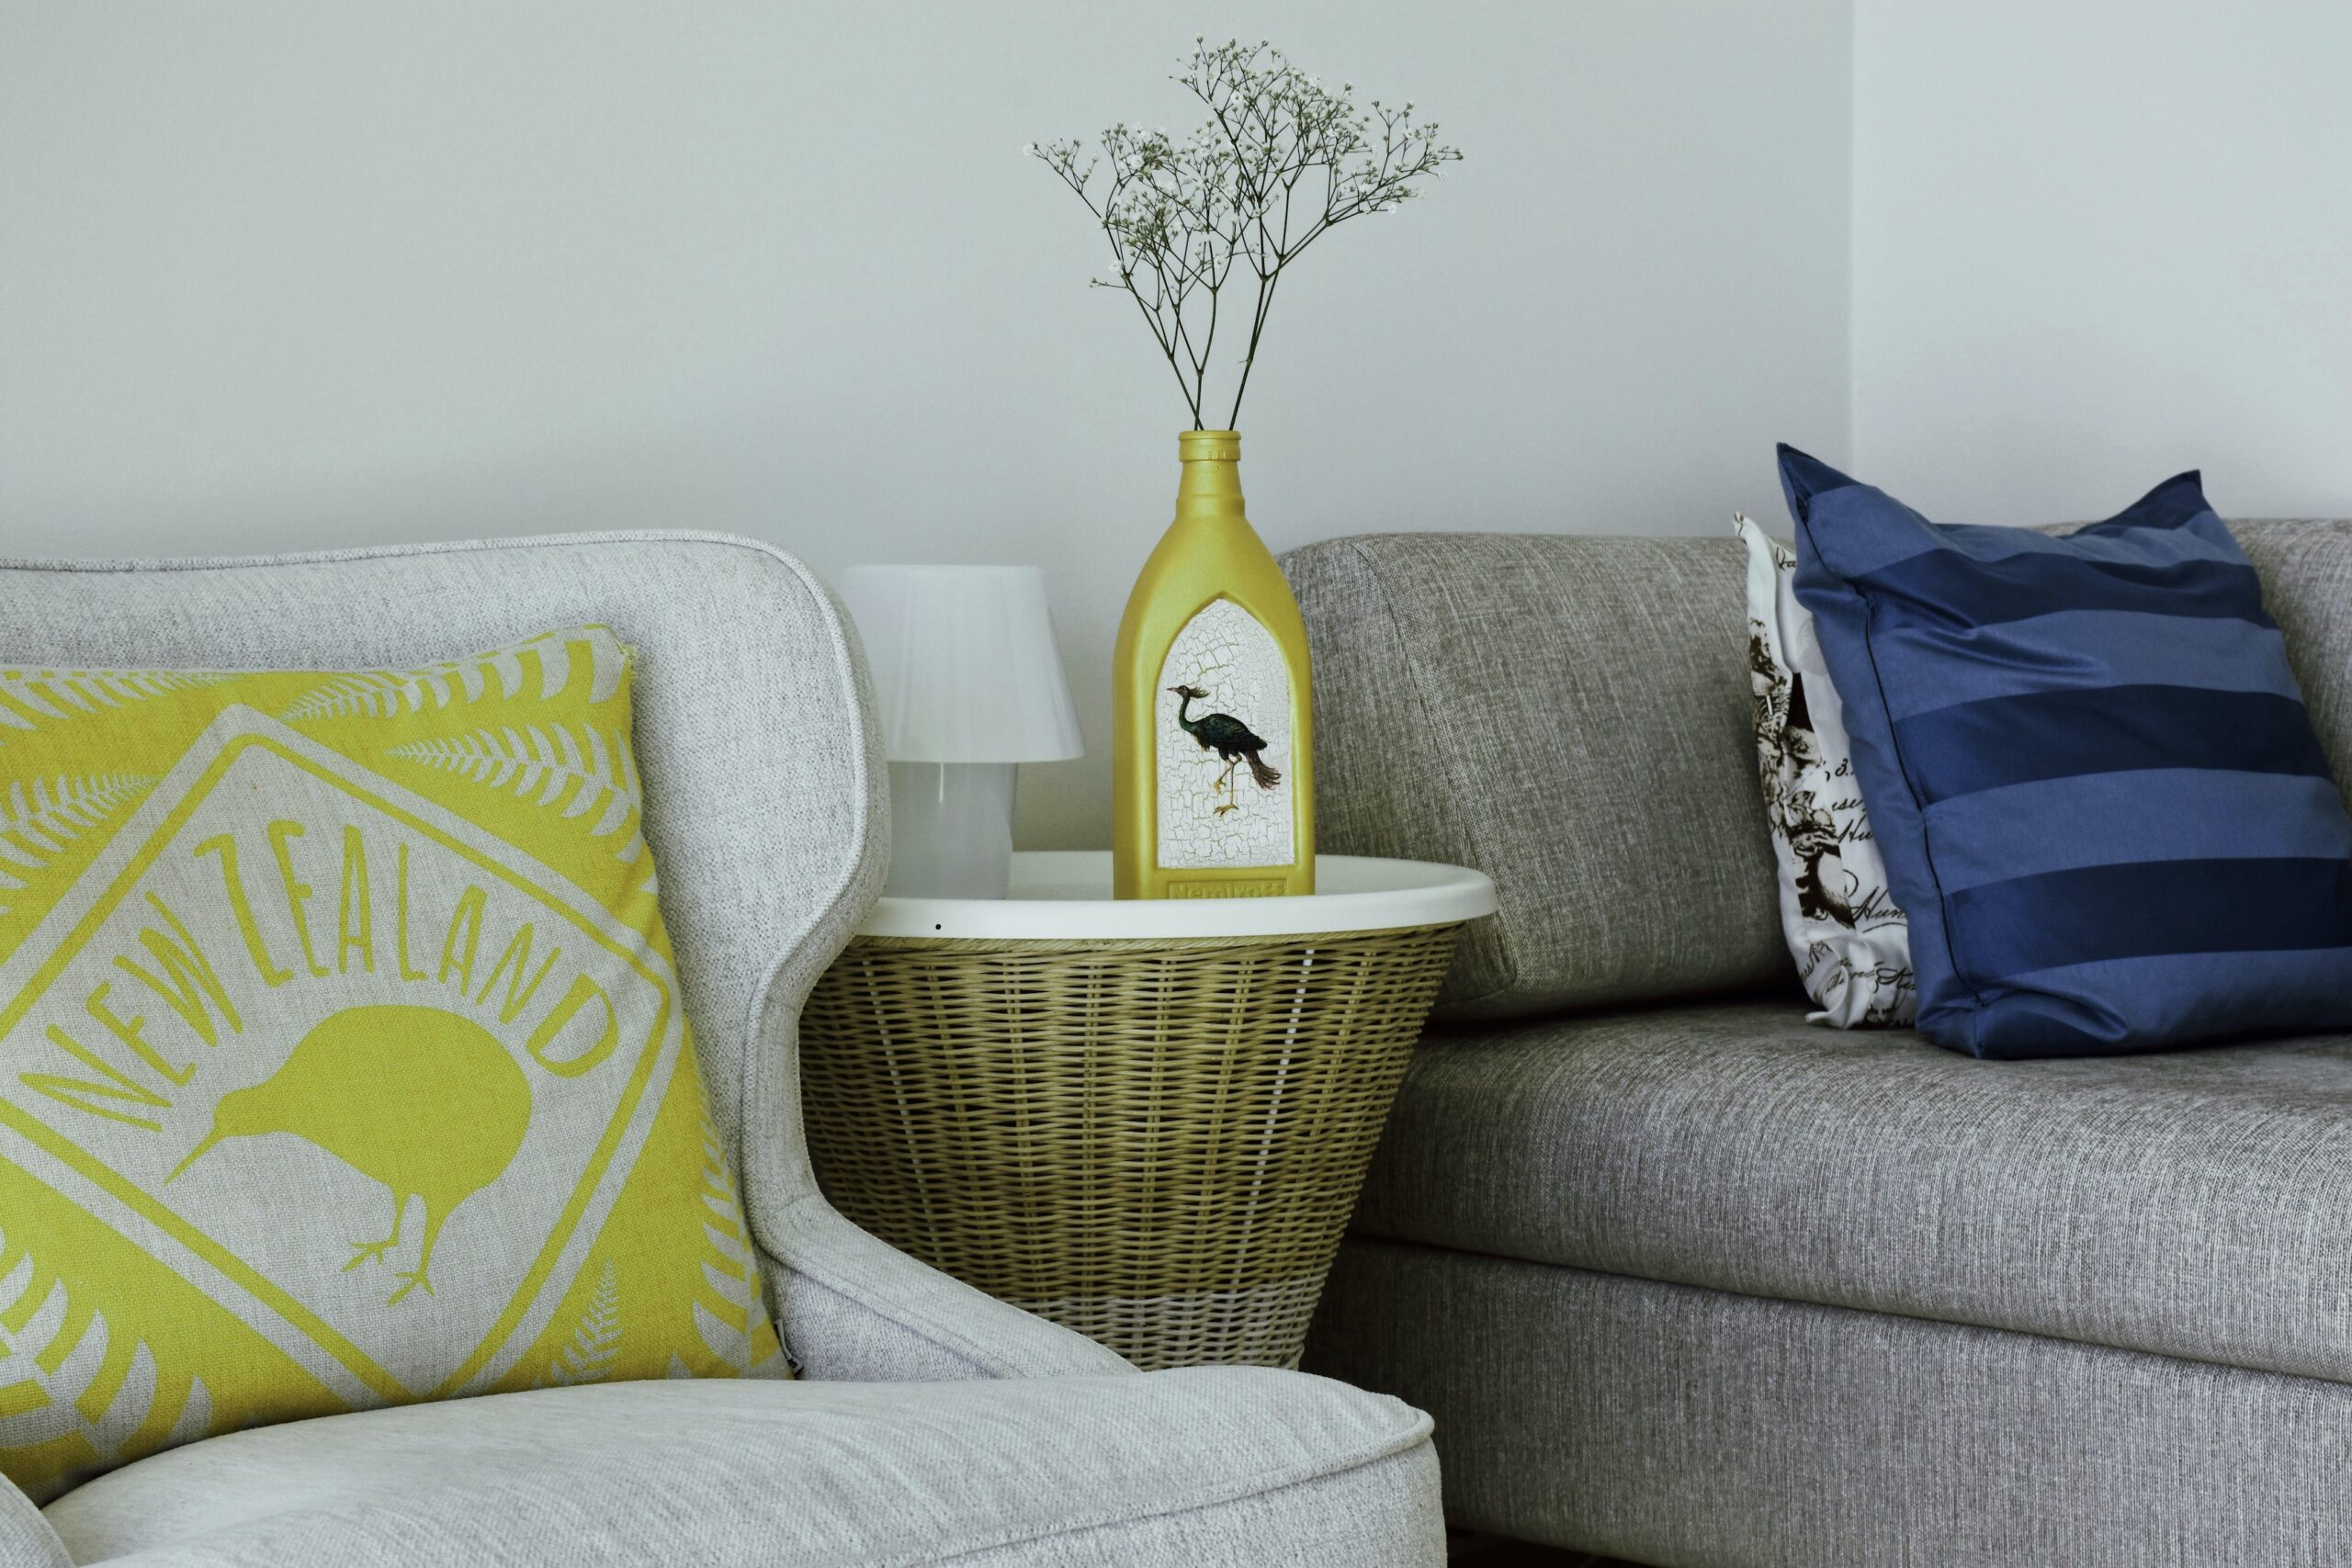 Pantone Colour Of The Year 2021 - Ultimate Gray and Illuminating, in home decor